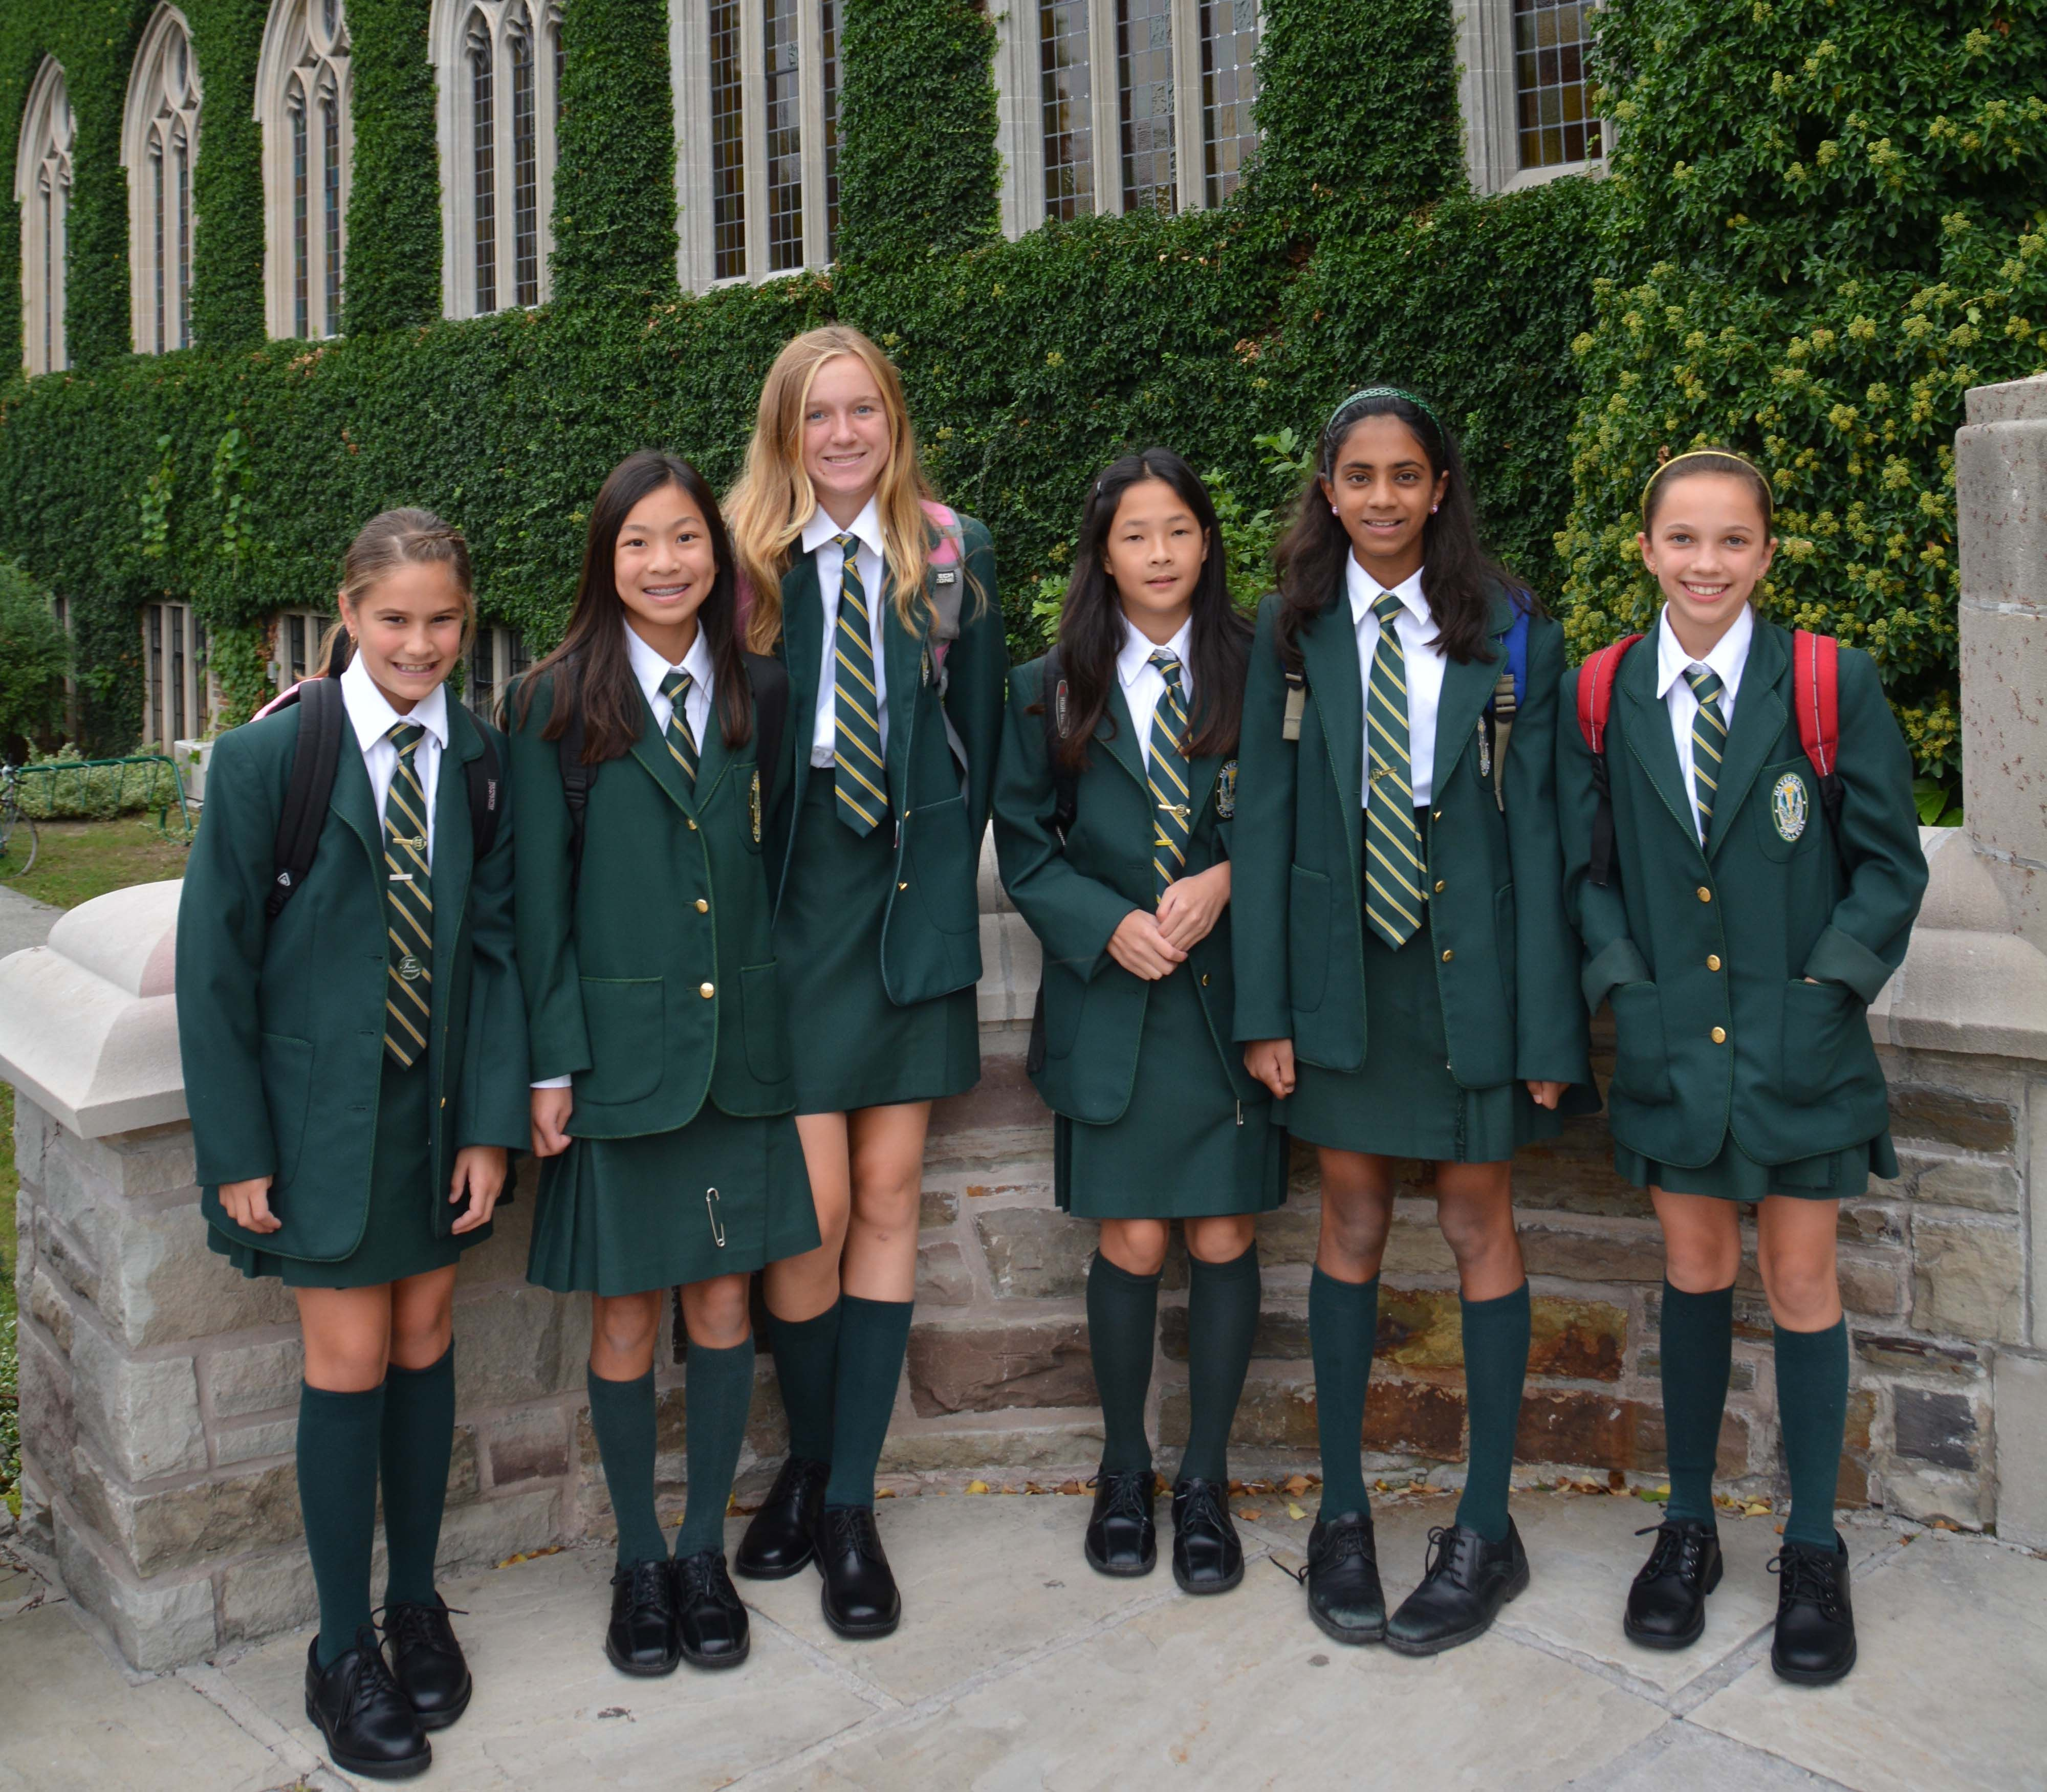 Private school uniforms and dress codes